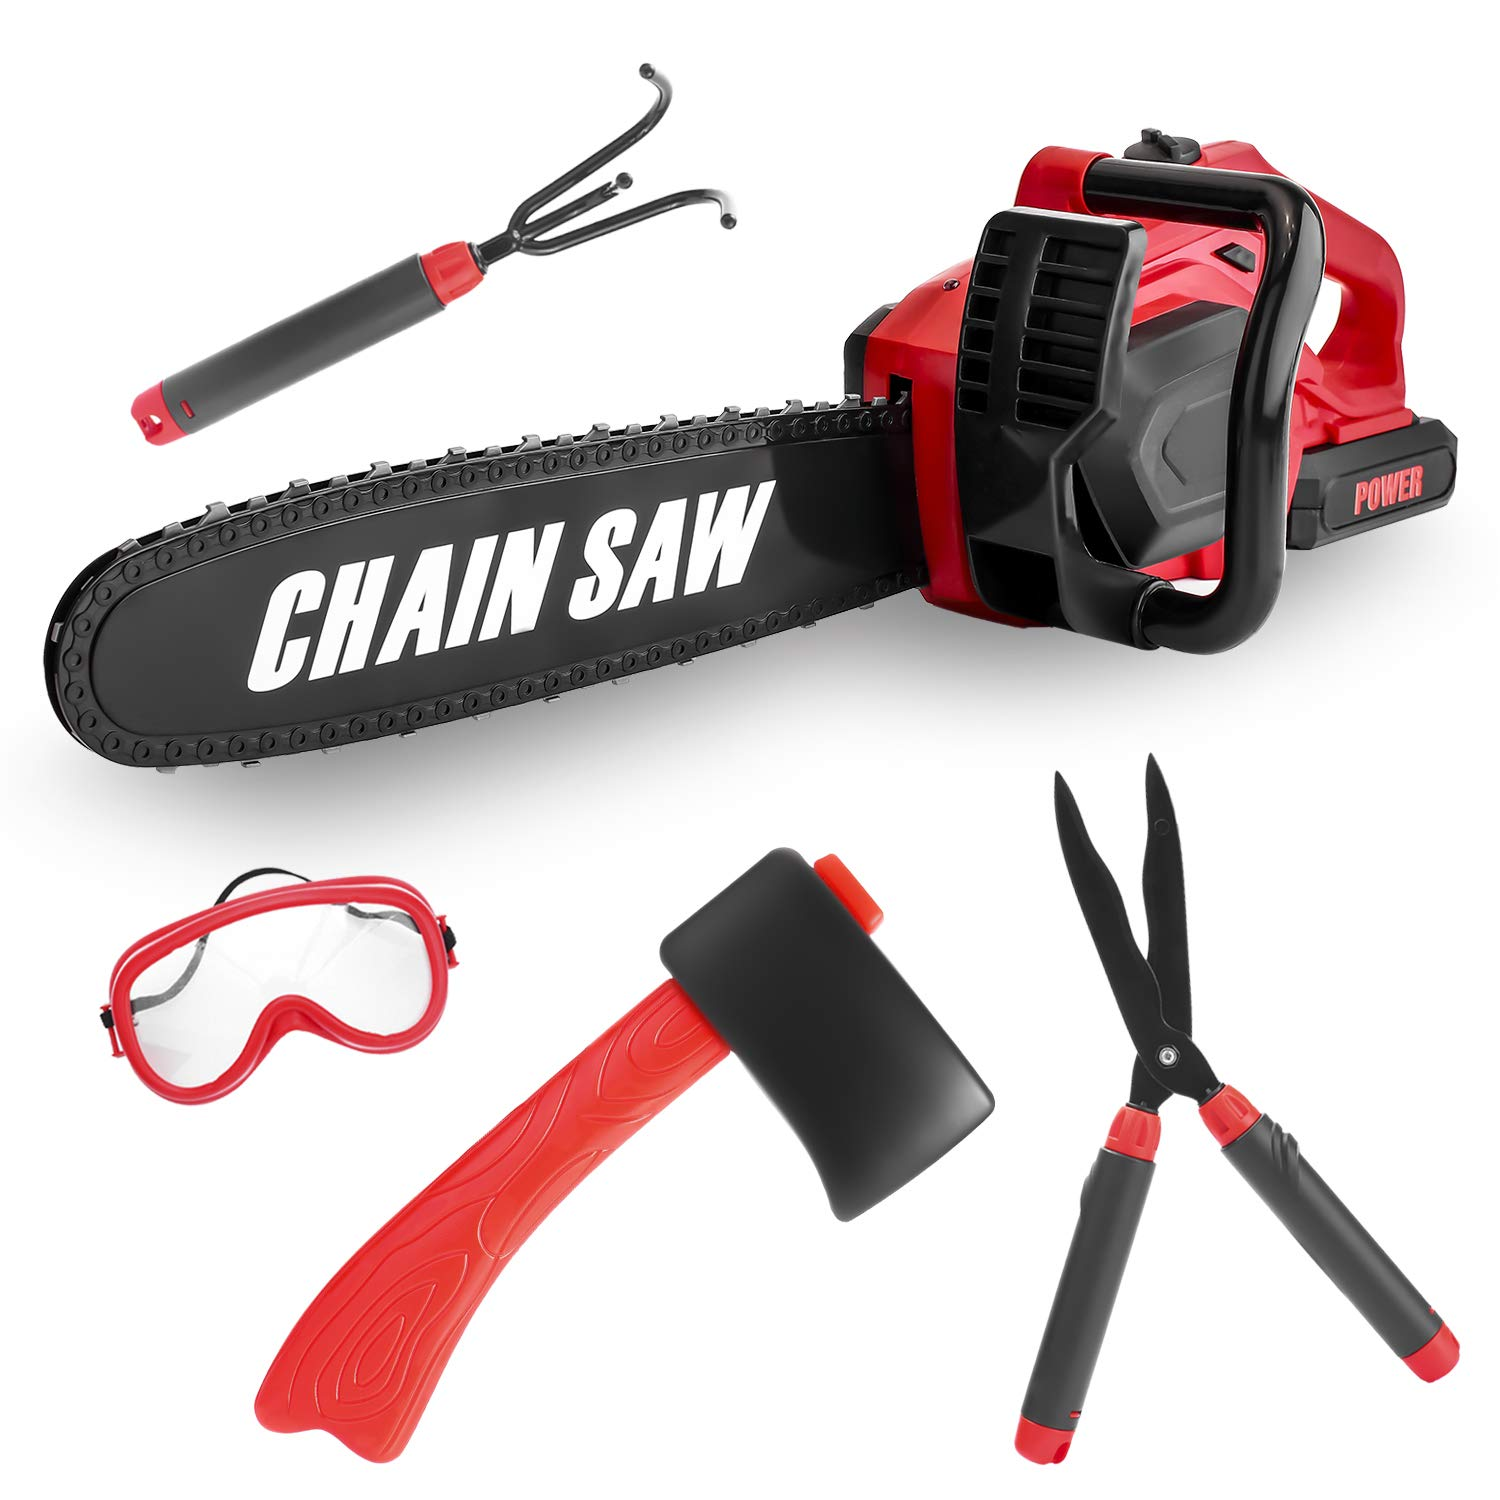 Kids Size Power Construction Yard Toy Pack Tool Big Play Realistic Giant Chainsaw with Sound, Toddlers Pretend Play Yardwork Lawn Equipment Giant Plastic 20'' Chains Saw for Boys Garden Tool